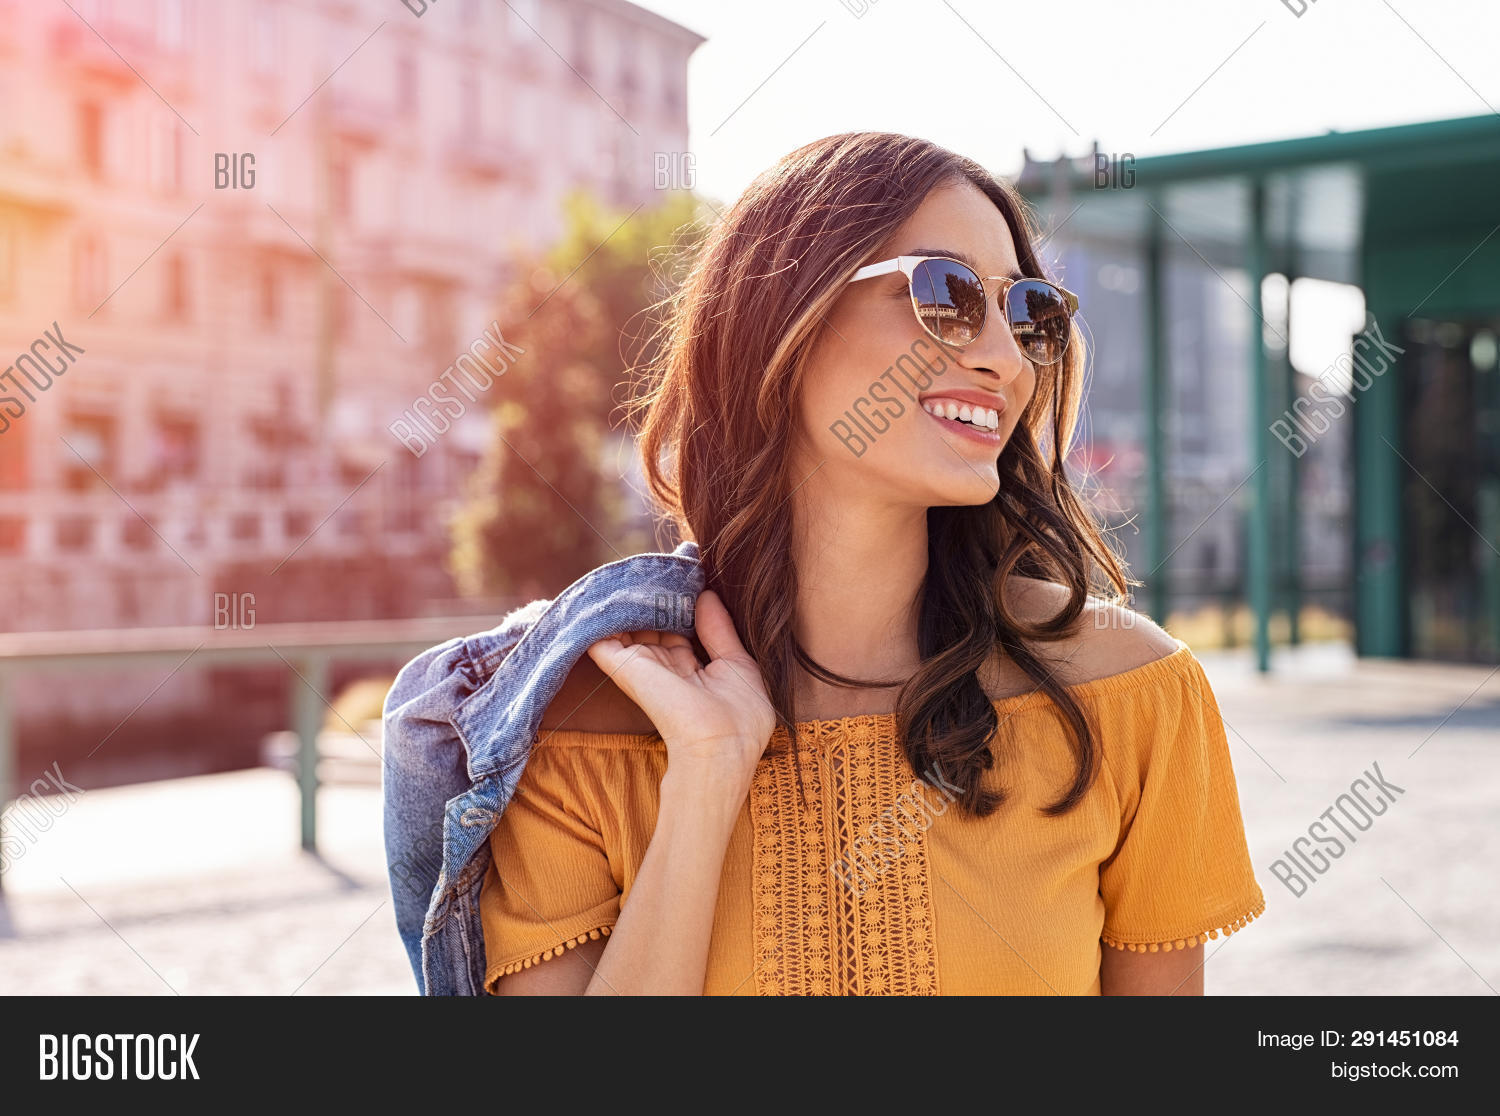 attractive,beautiful,beauty,carefree,casual,city,city background,city street,cool girl,fashion,fashionable,free,girl,glasses,happy,hispanic,latin,leisure,lifestyle,looking away,one,outdoor,outside,people,relax,serene,smile,spring,street,style,stylish,summer,sunglasses,sunset city,toothy smile,tourist,town,traveler,travelling,trendy,urban,vacation,walk,weekend,woman,young,young woman